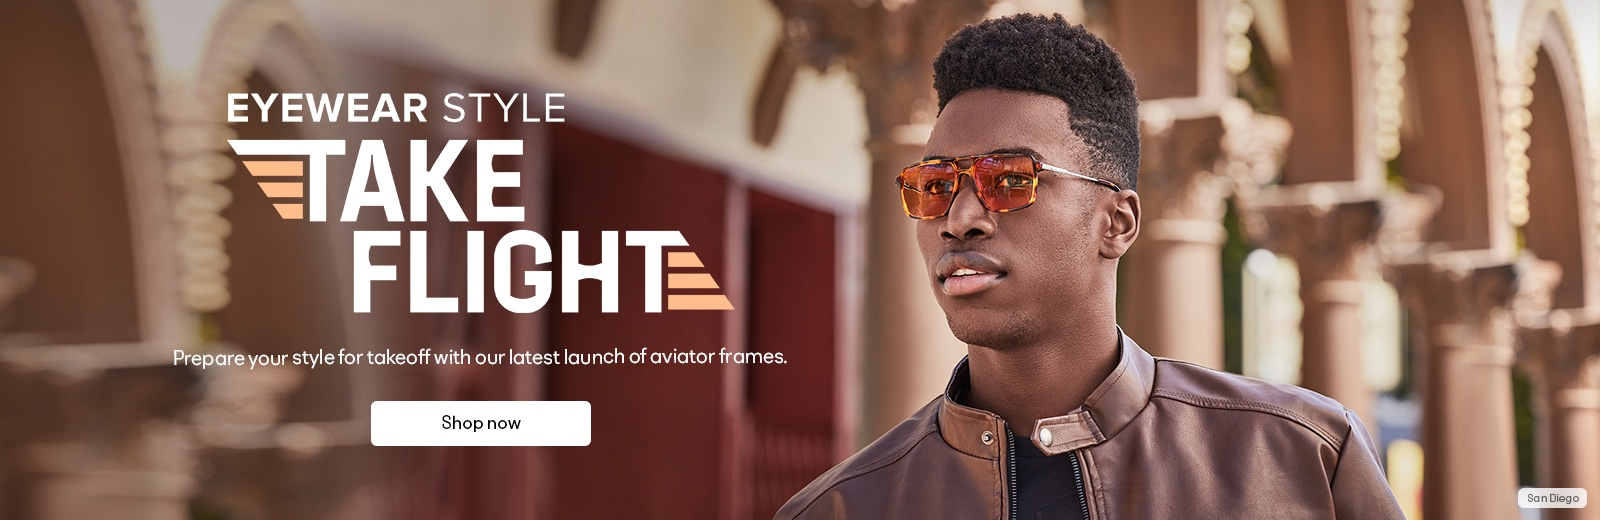 Take Flight  Prepare your style for takeoff with our latest launch of aviator frames.